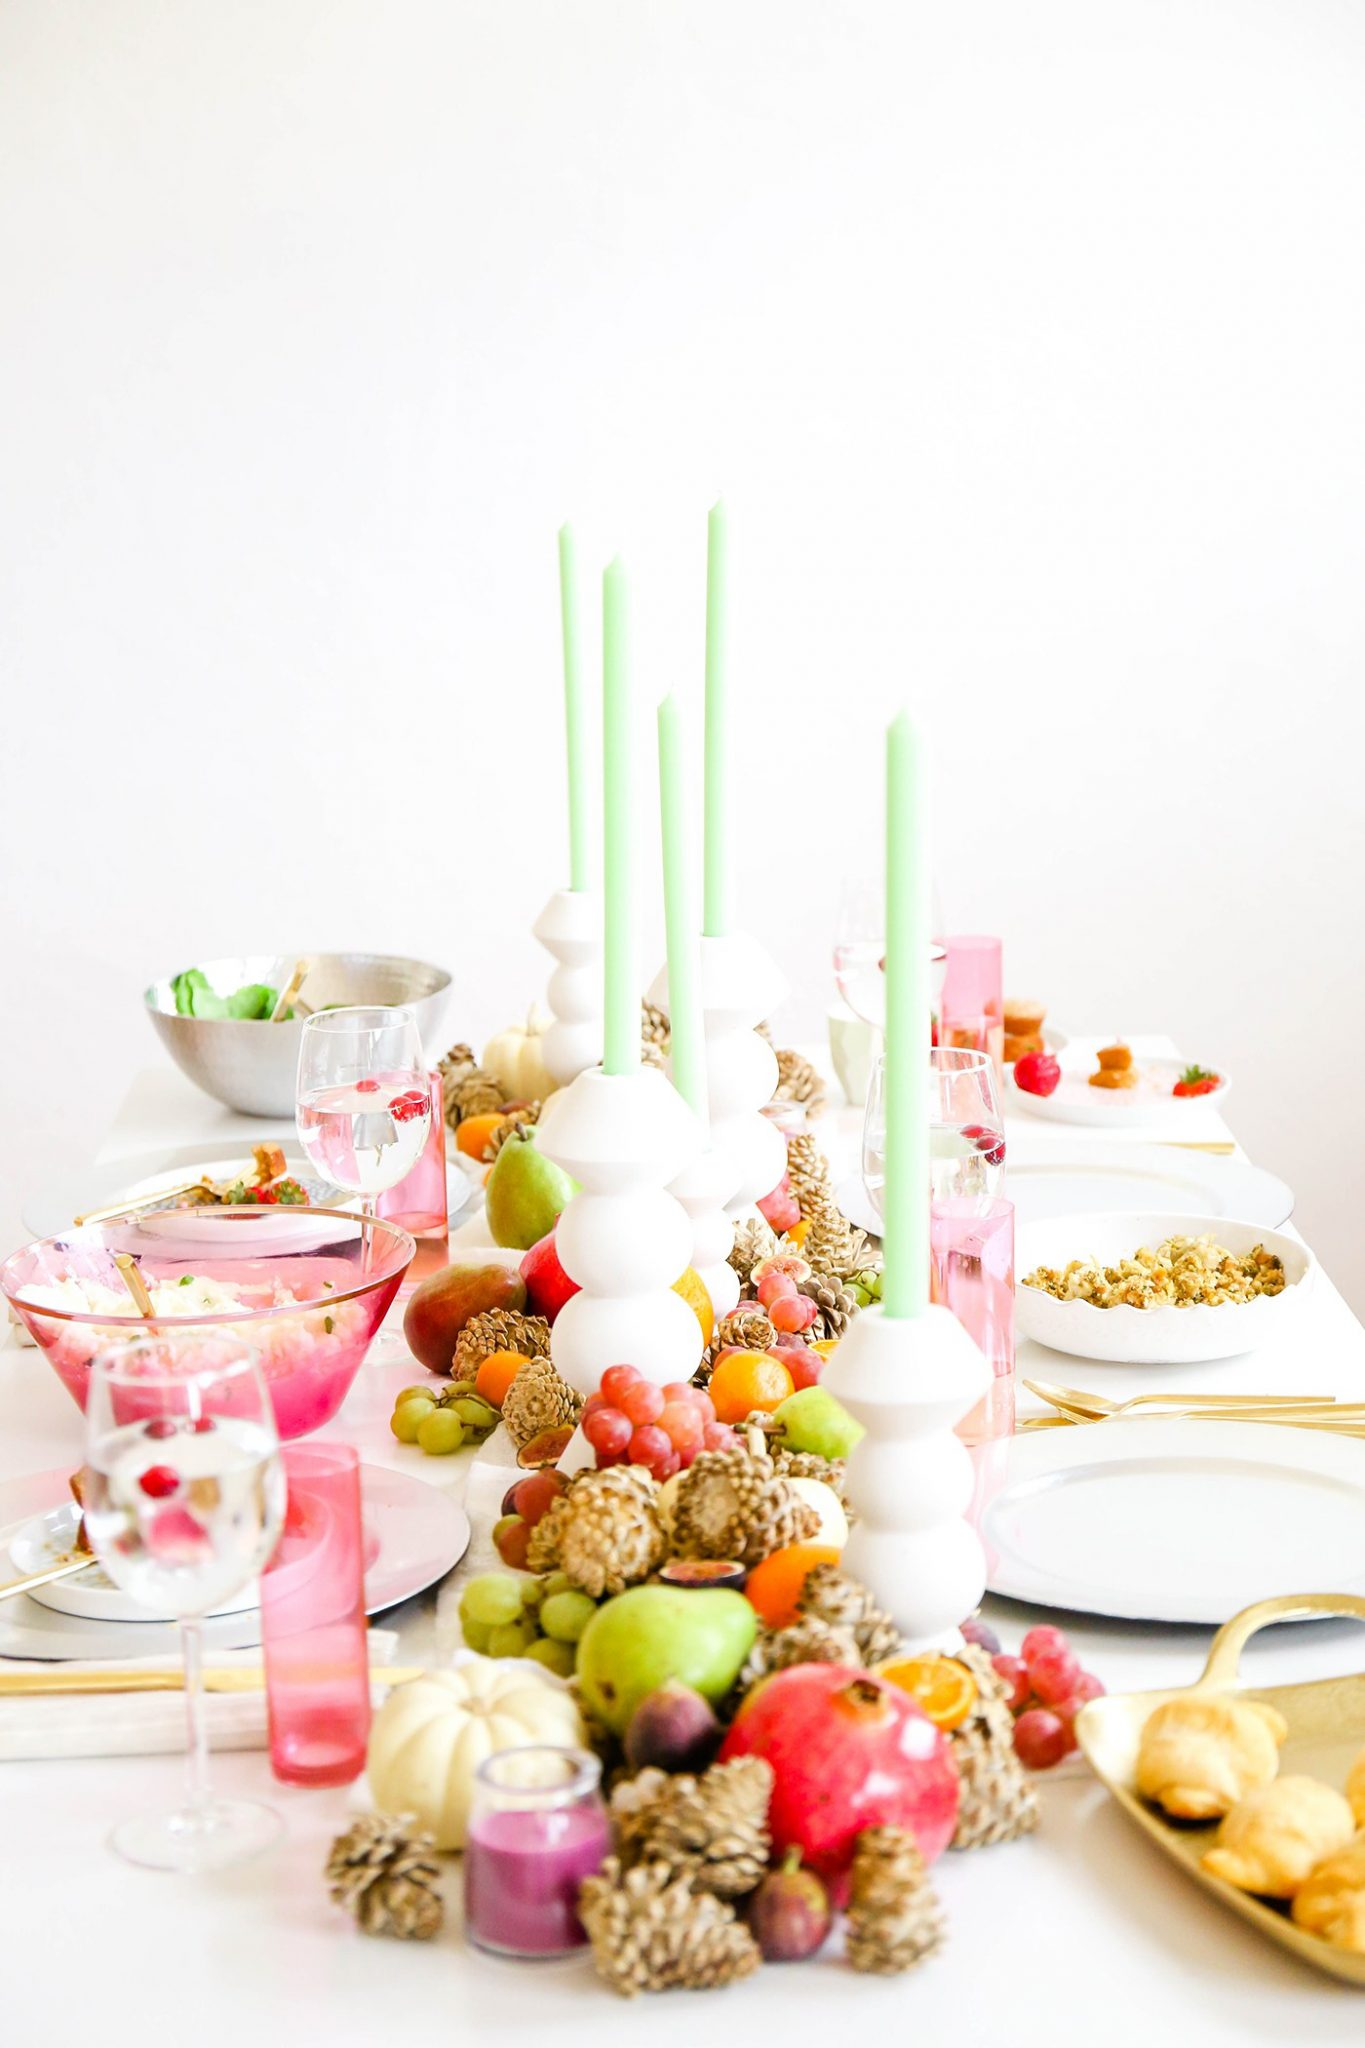 12 Beautiful Modern Thanksgiving Decorations - The Sweetest Occasion